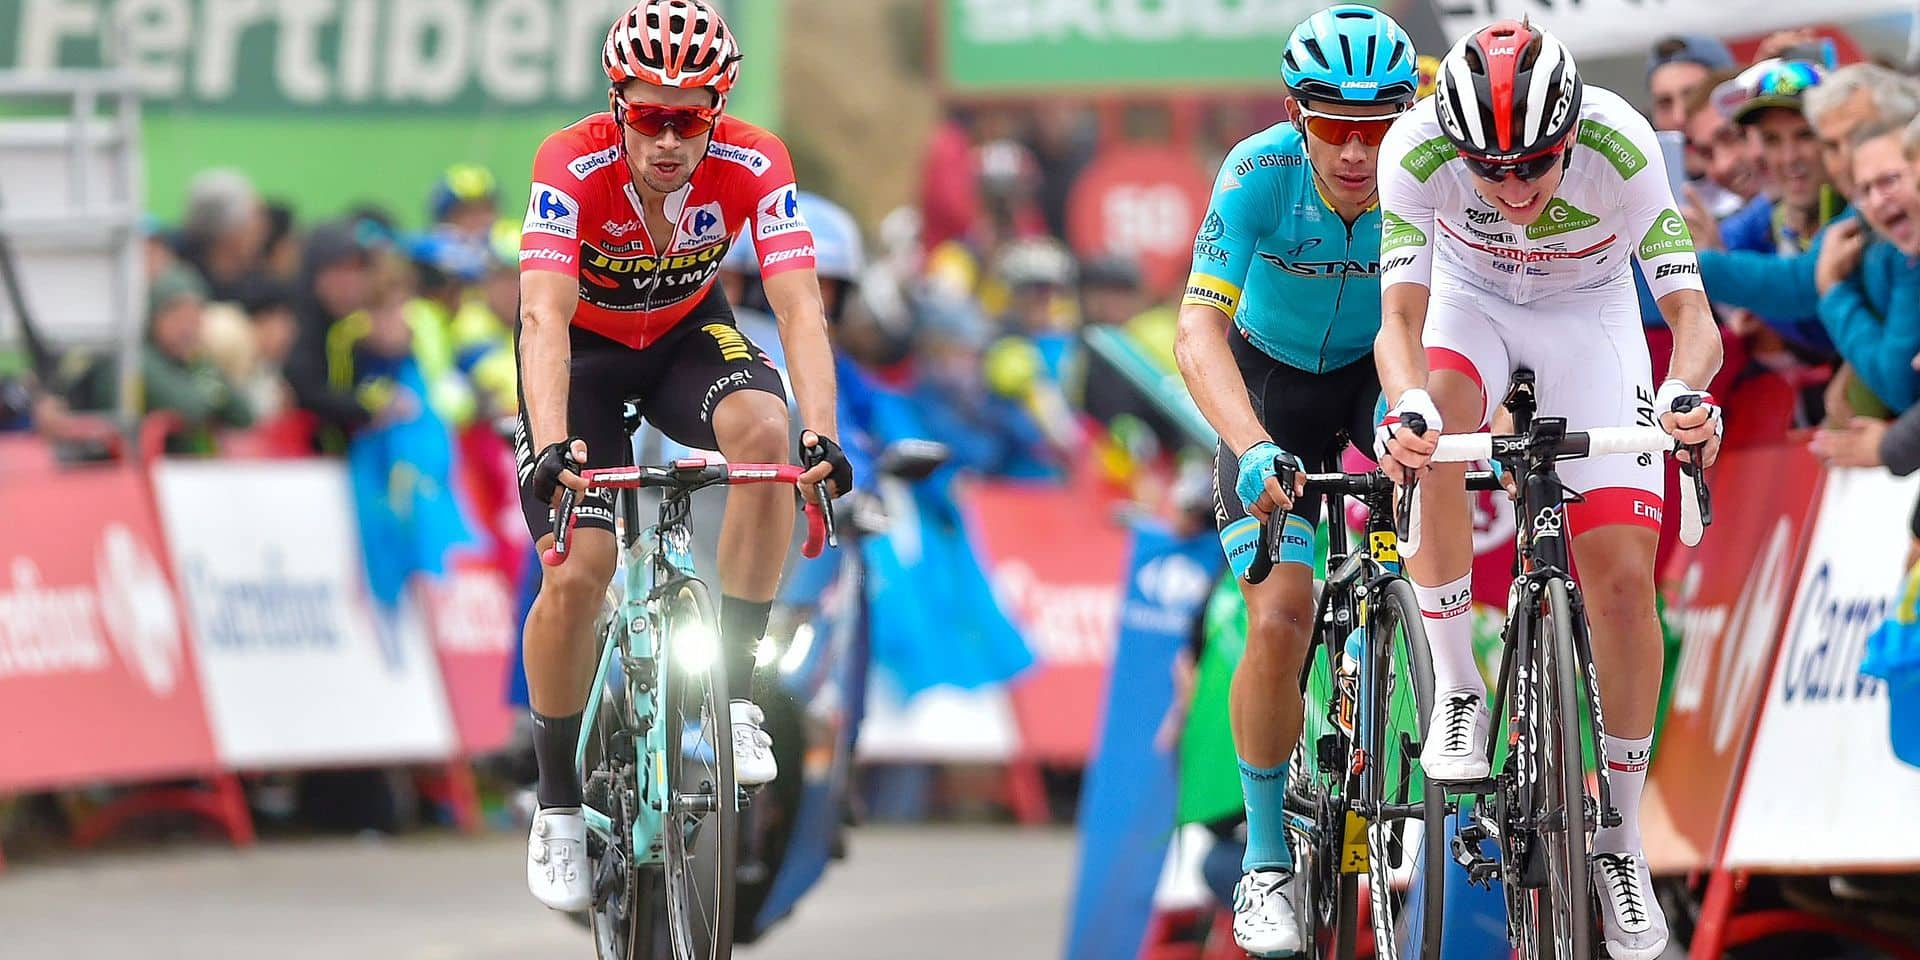 Team UAE Emirates rider Slovenia's Tadej Pogacar (R) leads Team Astana rider Colombia's Miguel Angel Lopez (C) and Team Jumbo rider Slovenia's Primoz Roglic (L) to the finish line of the 16th stage of the 2019 La Vuelta cycling Tour of Spain, a 144,4 km race from Pravia to the Alto de la Cubilla in Lena on September 9, 2019. (Photo by Ander GILLENEA / AFP)